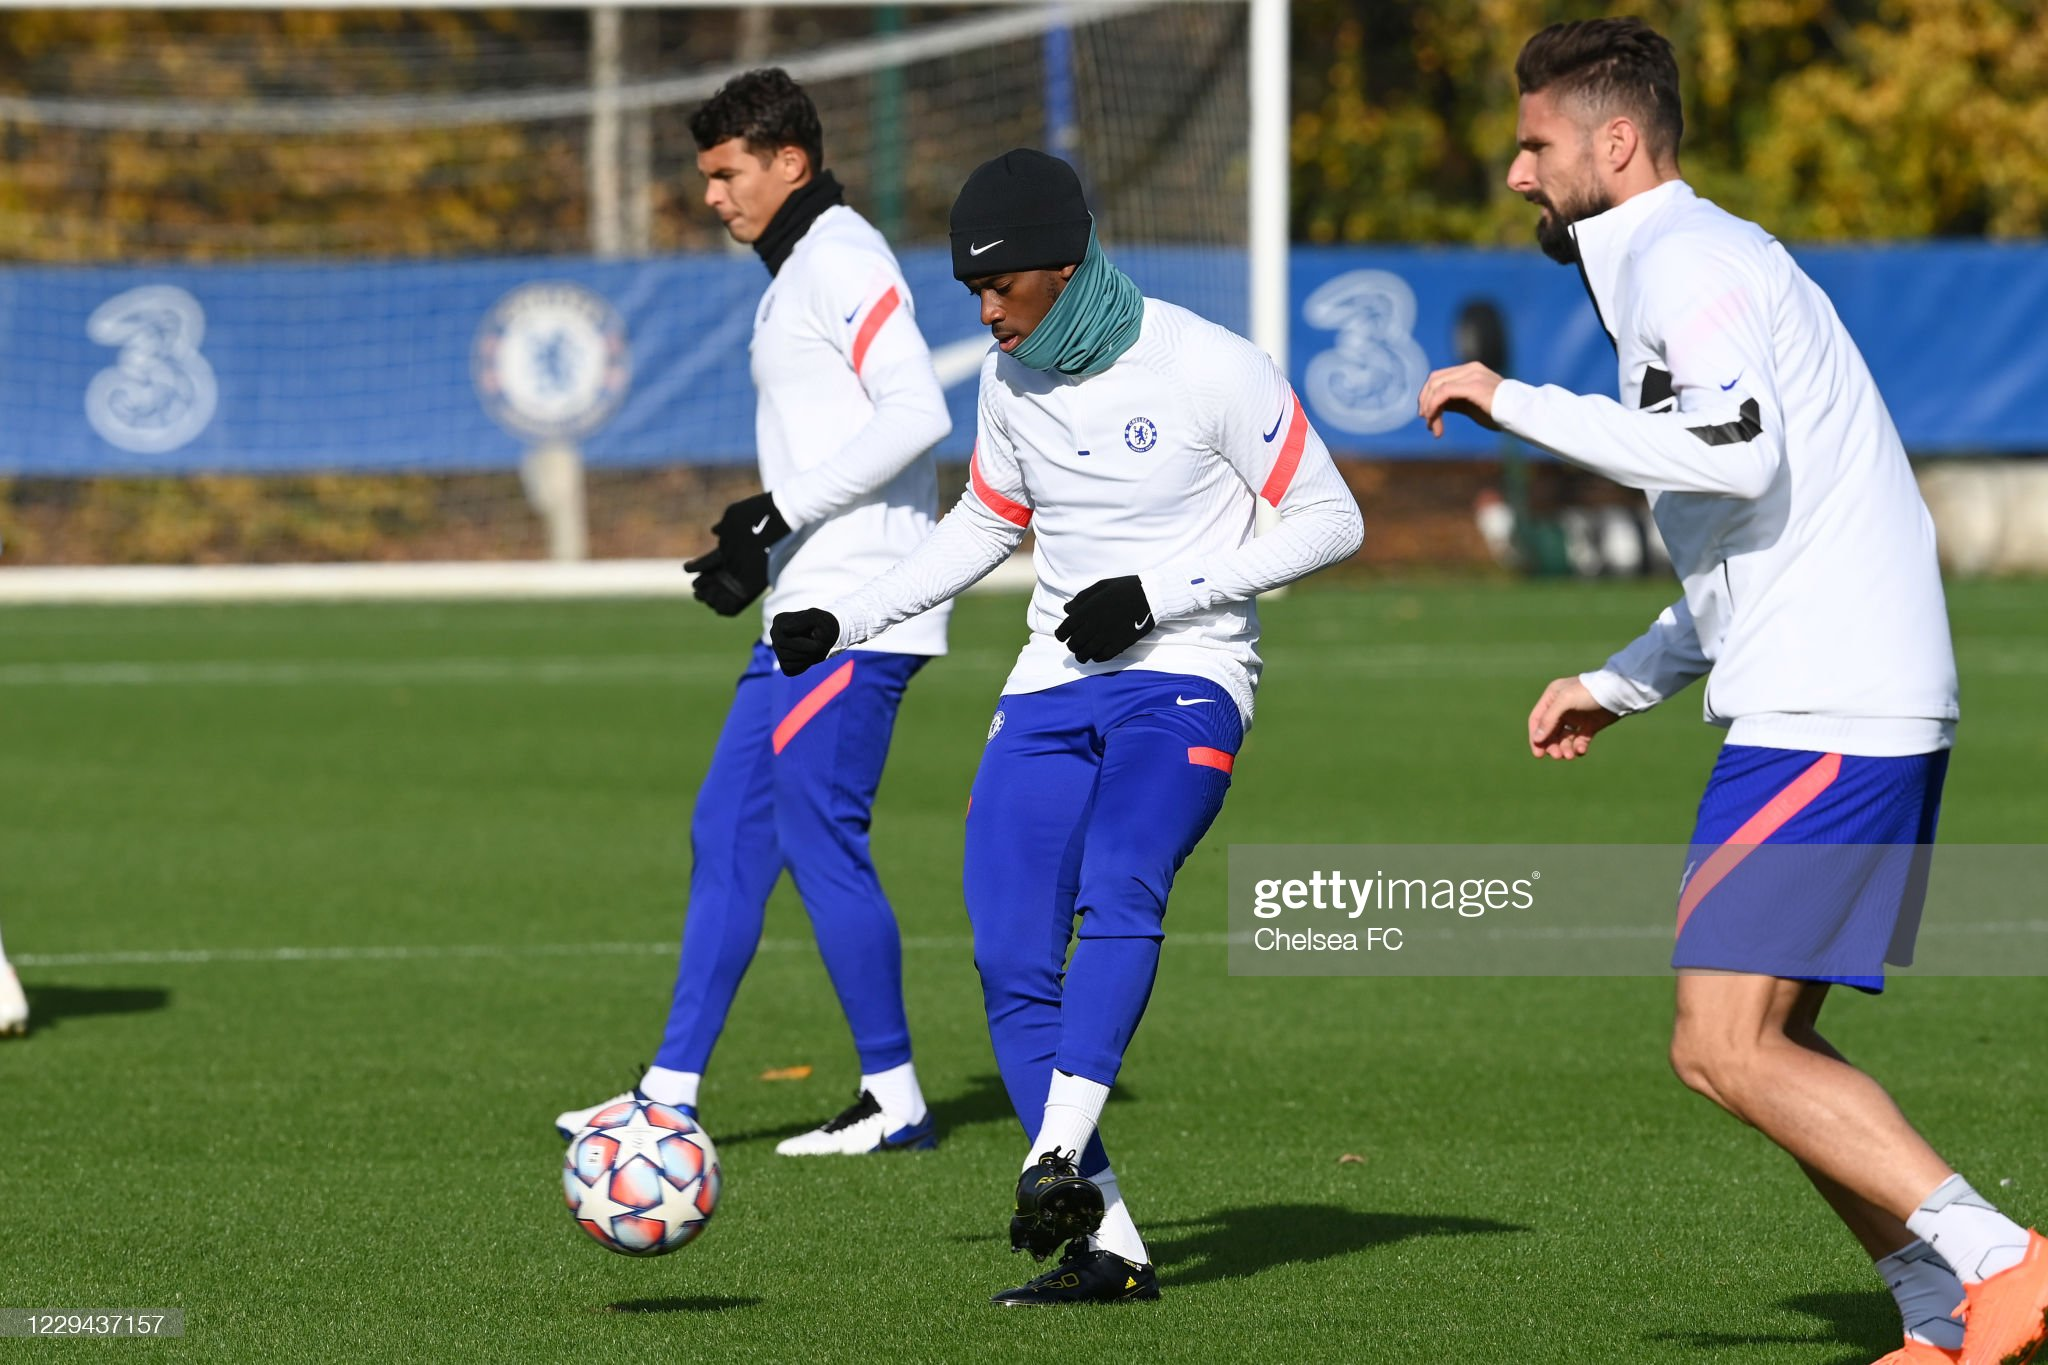 Chelsea FC - Press Conference And Training Session : News Photo